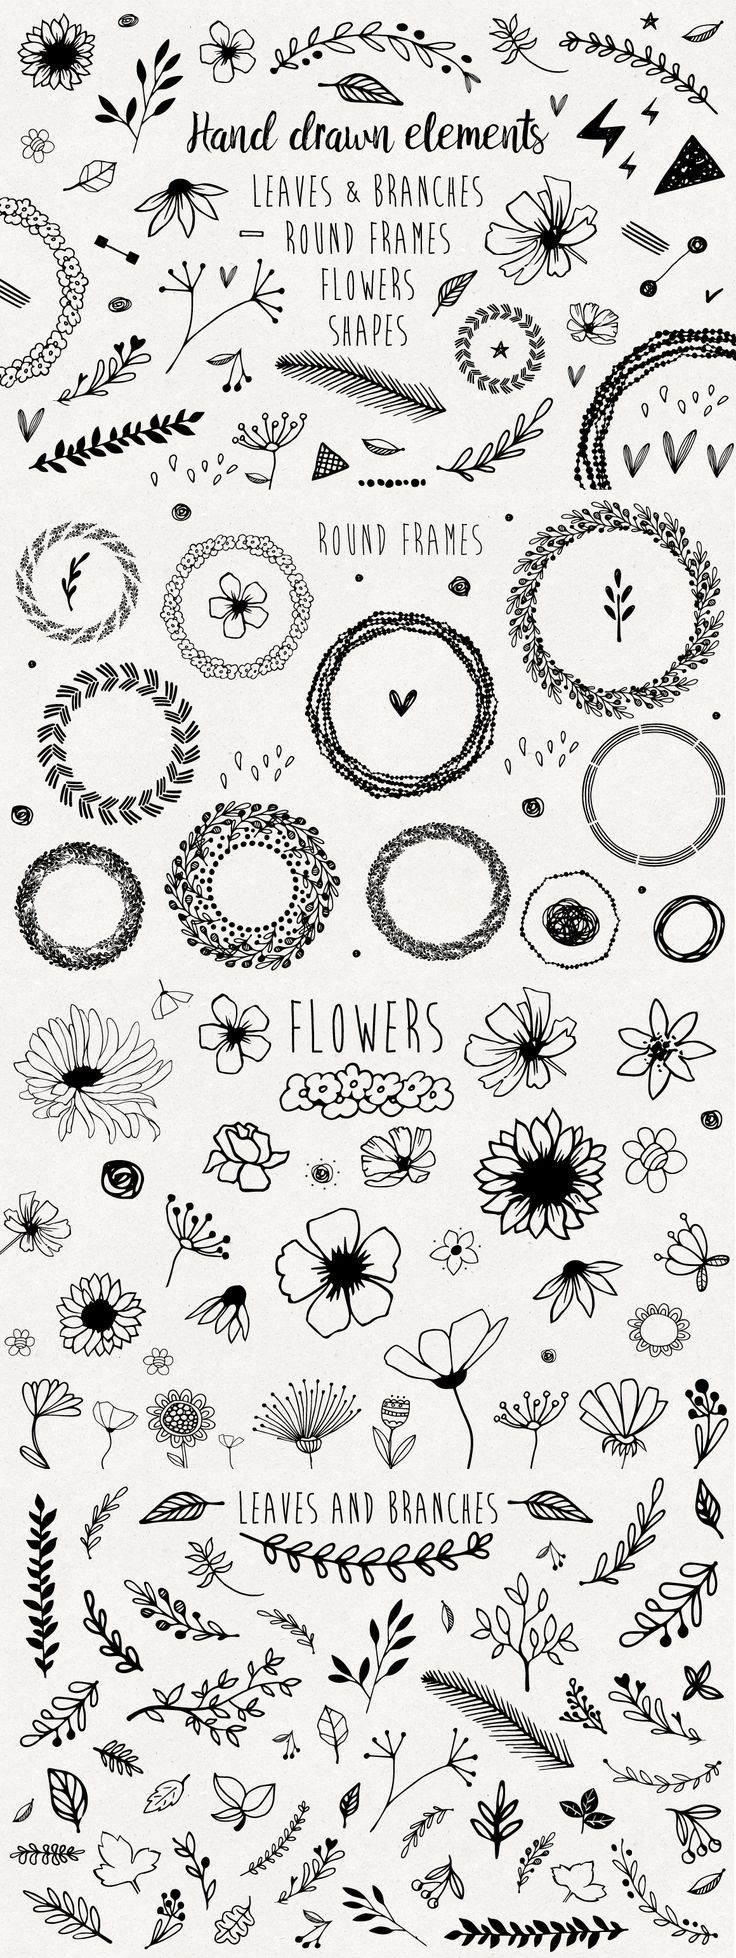 Hand drawn elements collection by mirabella.taide on @Creative Market